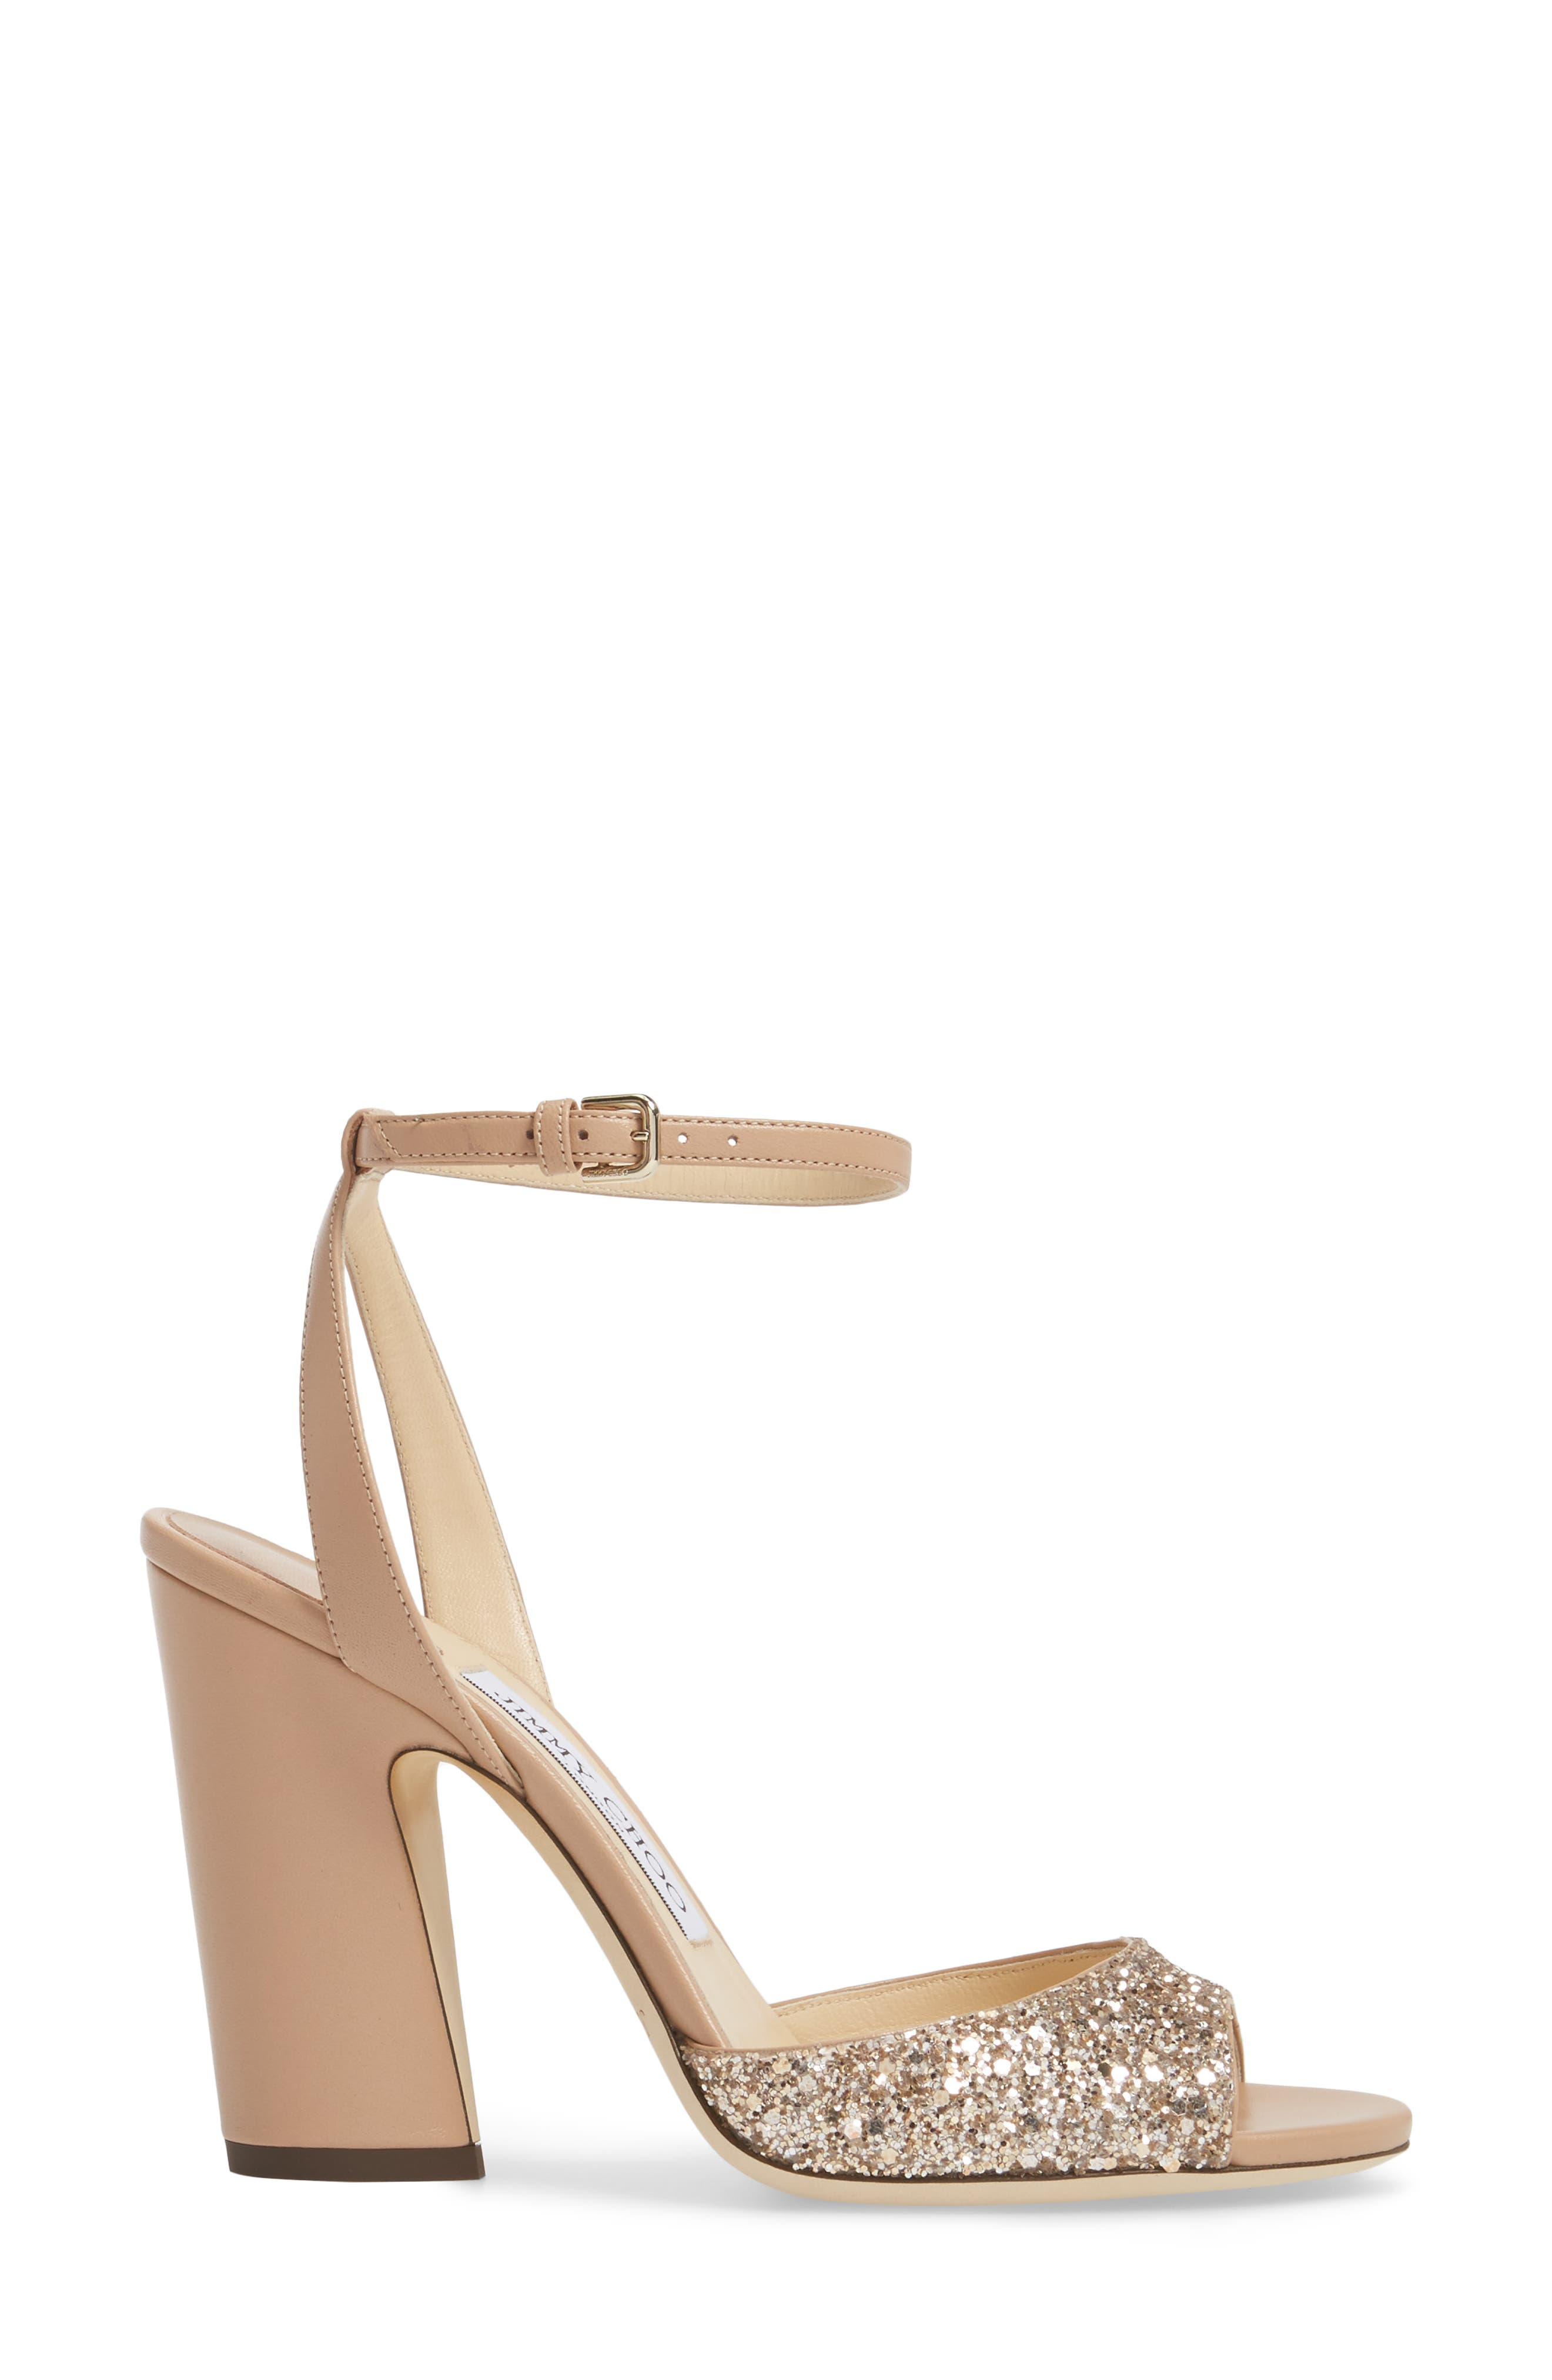 Miranda Statement Heel Sandal,                             Alternate thumbnail 3, color,                             Ballet Pink